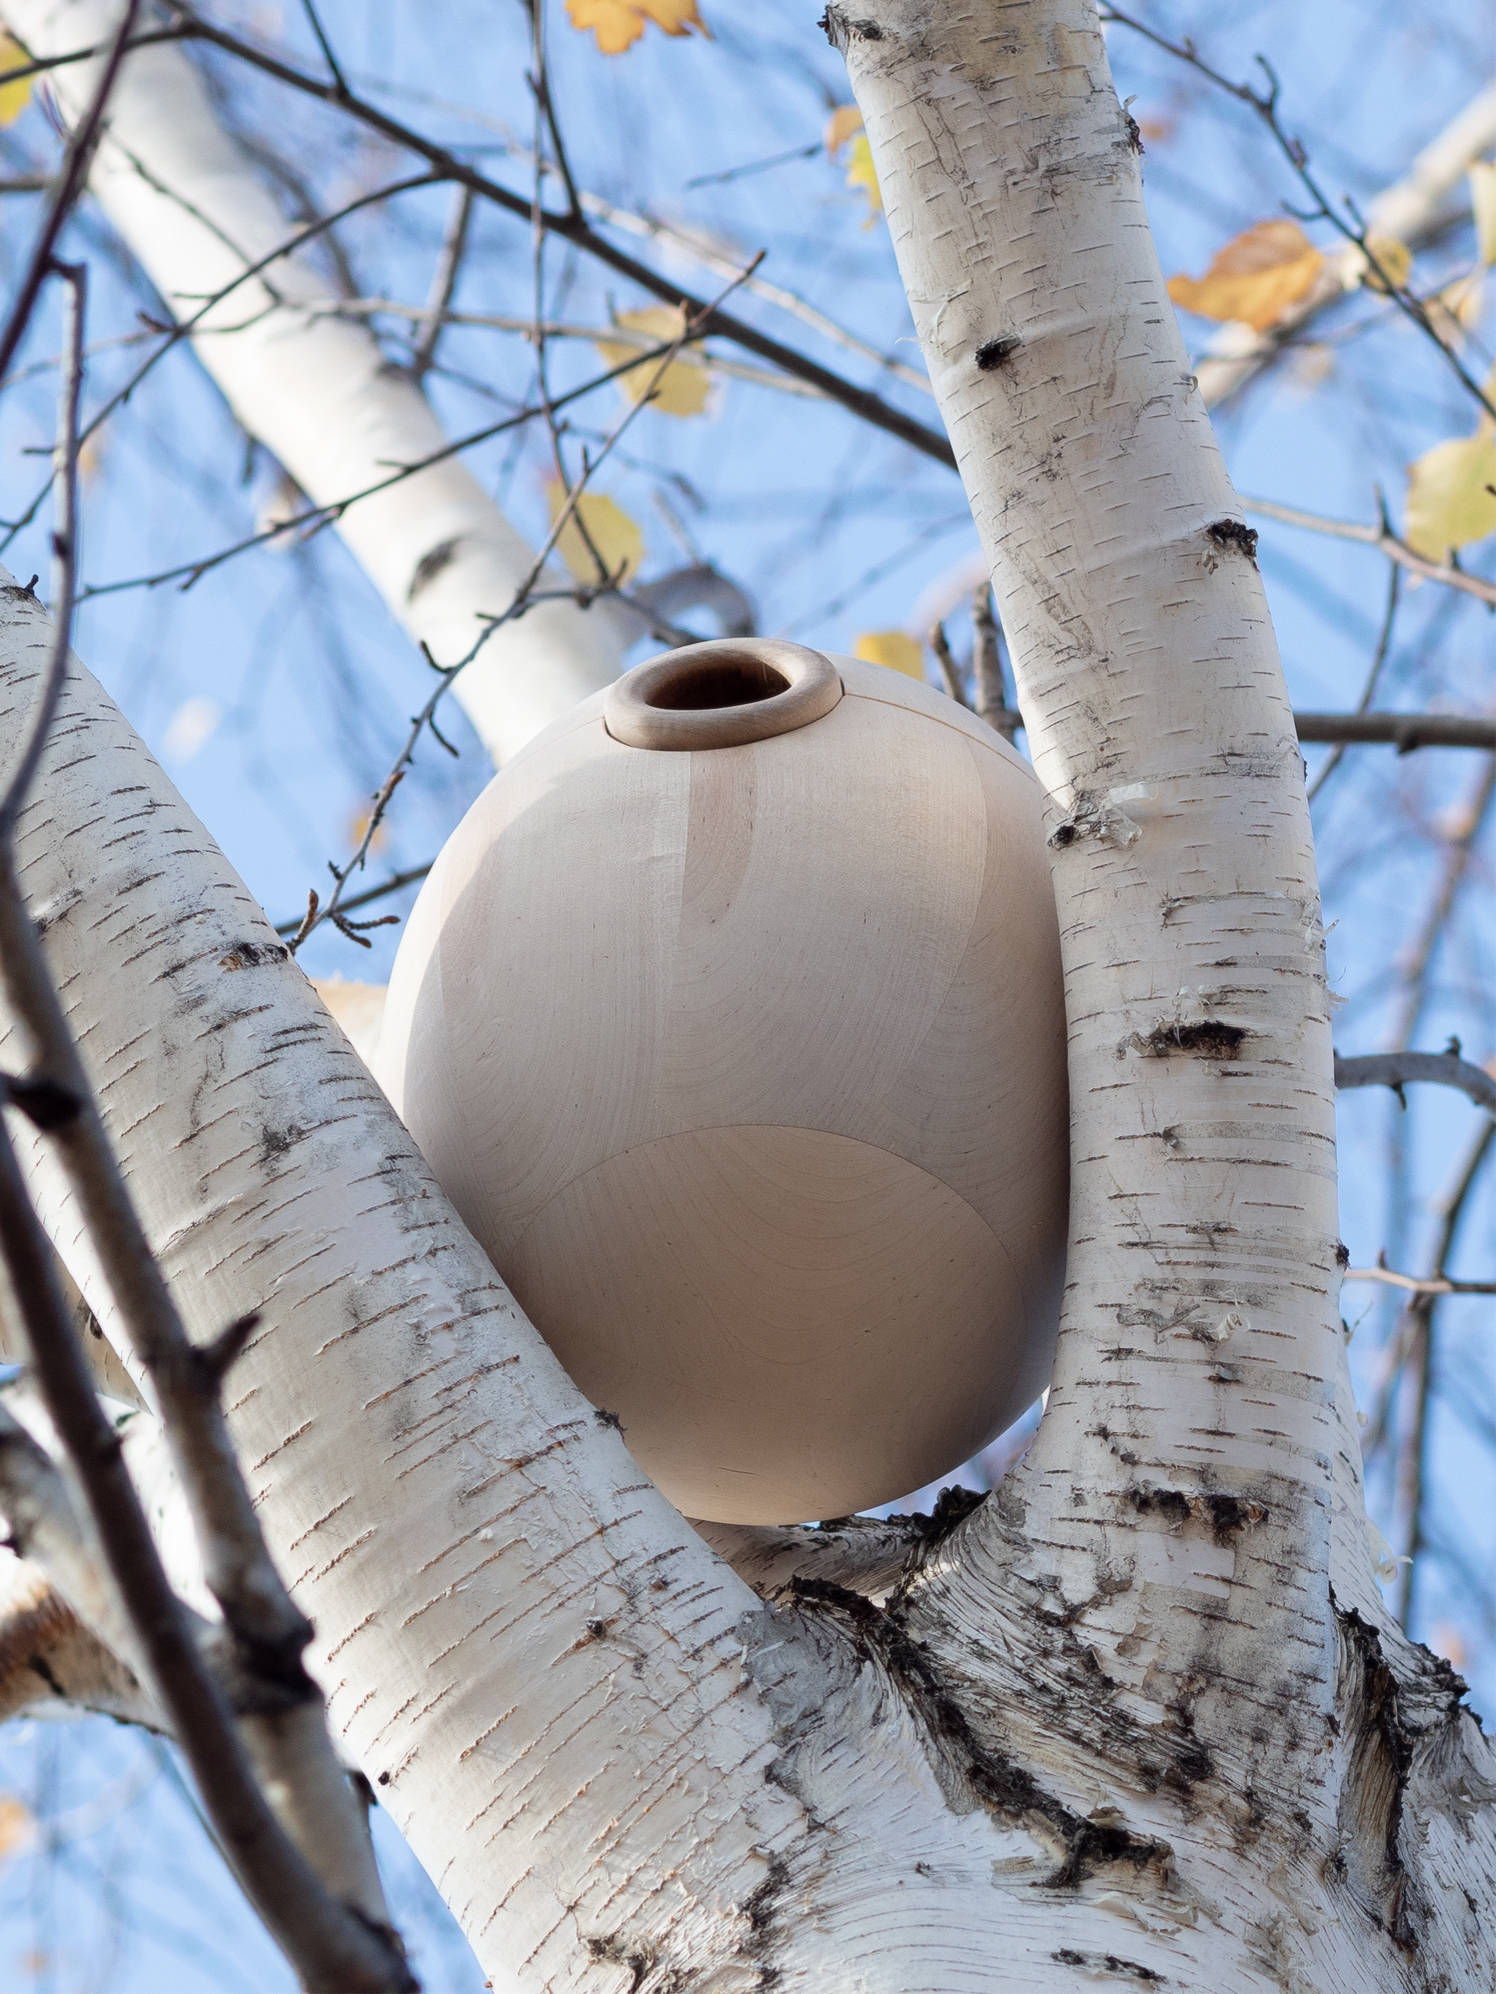 The birdhouse helps to redefine the garden and take care of the environment. Why birds? Birds protect nature from insect pests, and their singing helps to relax, distracting from sad thoughts and everyday life. It was decided to use the principles of design thinking and move away from the usual birdhouses. Studies have shown that thick branches and hollows are ideal nesting sites. Bird's house in its properties is close to a natural hollow. Its round shape, pleasing to the eye, makes it more natural and invisible on wood. The streamlined shape helps to reduce the impact of rain, snow and wind. Due to the low center of gravity, the house is securely fastened between the branches without damaging the tree. The body and mechanisms are made of wood with natural protective coatings, which makes it more environmentally friendly.